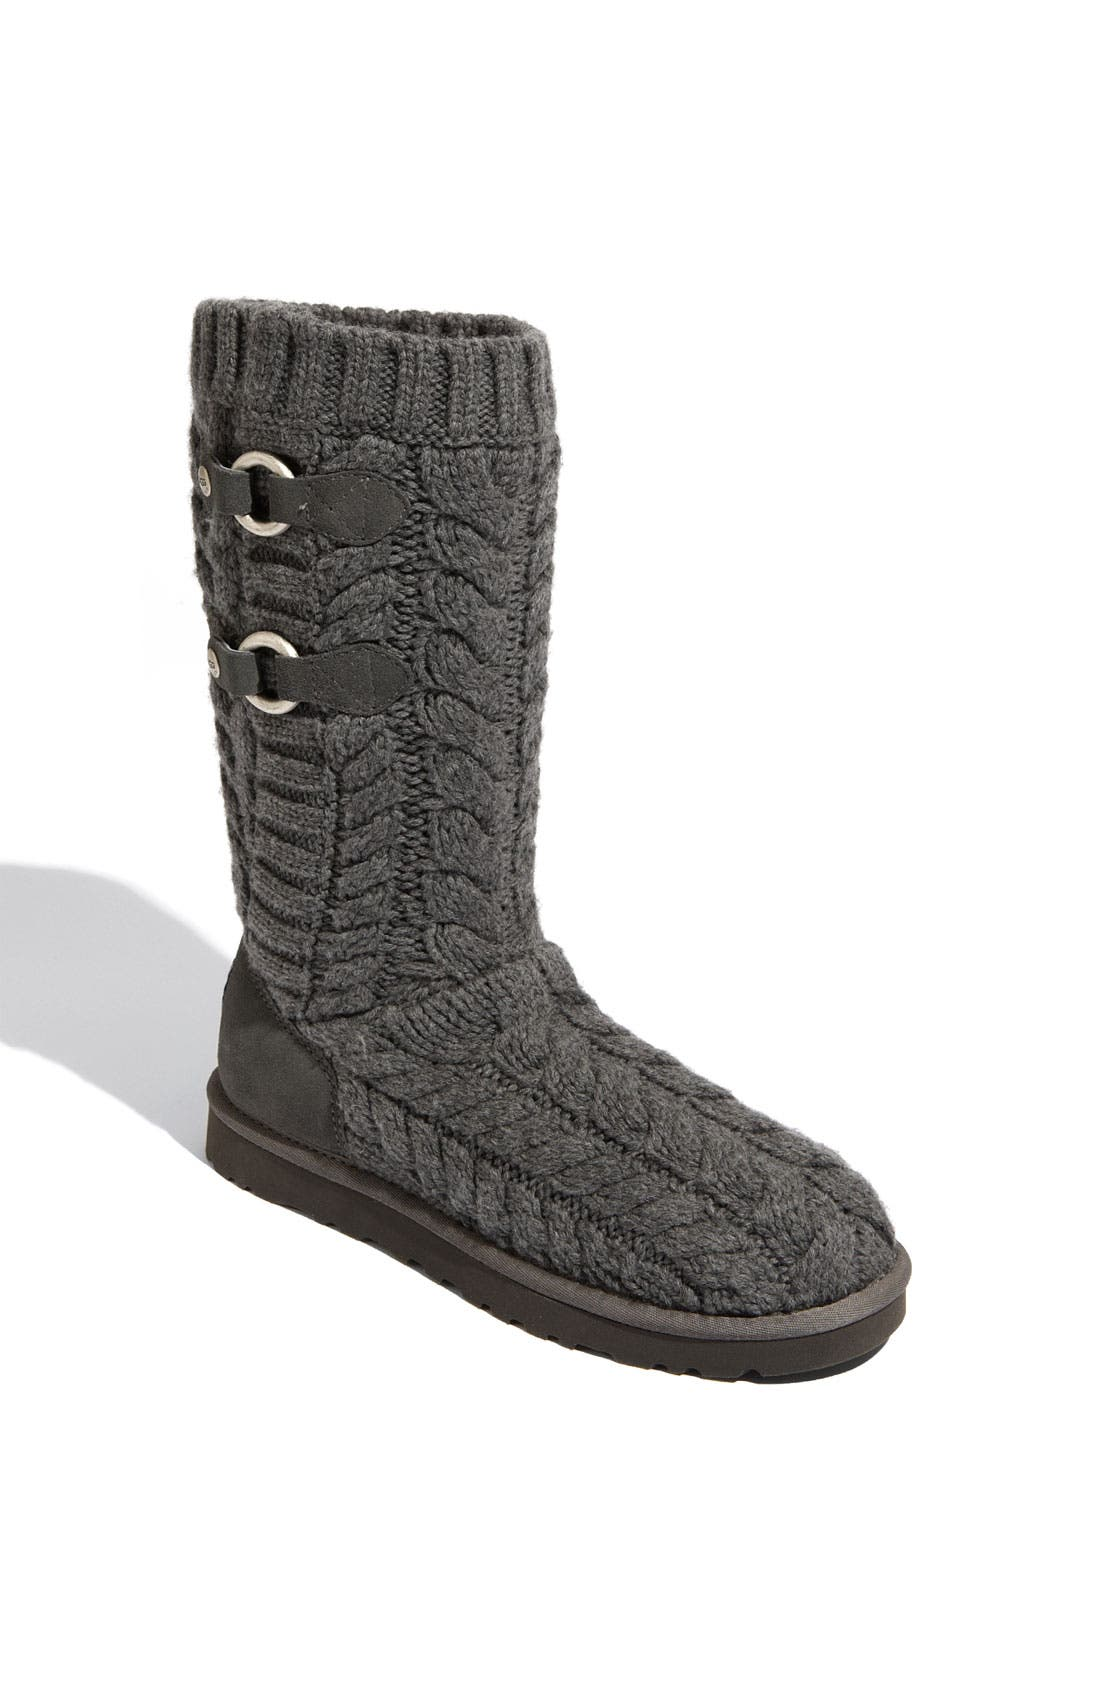 Main Image - UGG® Australia 'Tularosa Route Cable' Boot (Women)